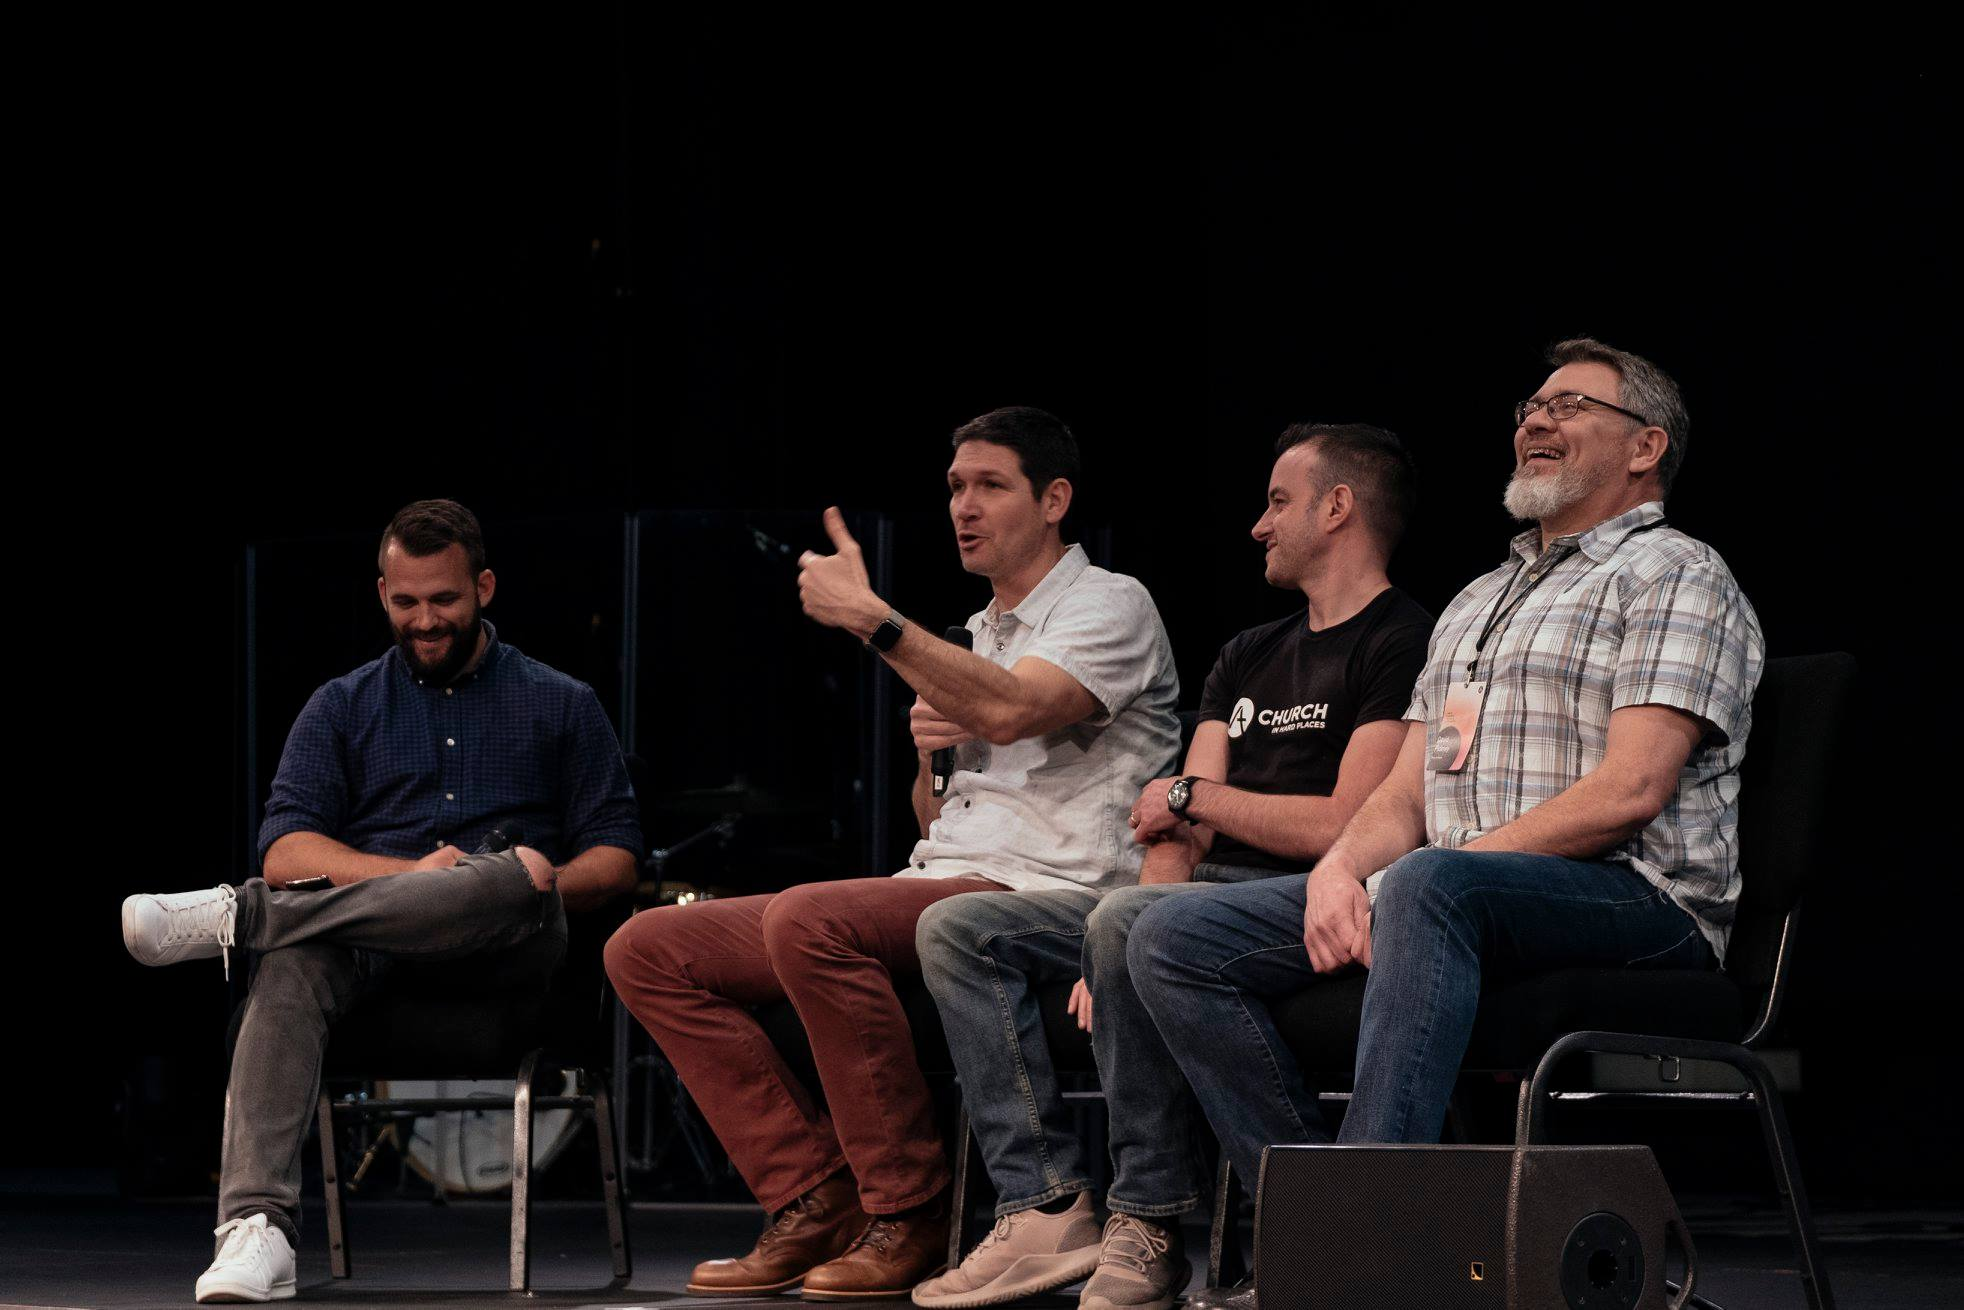 Session 3. Acts 29: Our Global Direction Panel